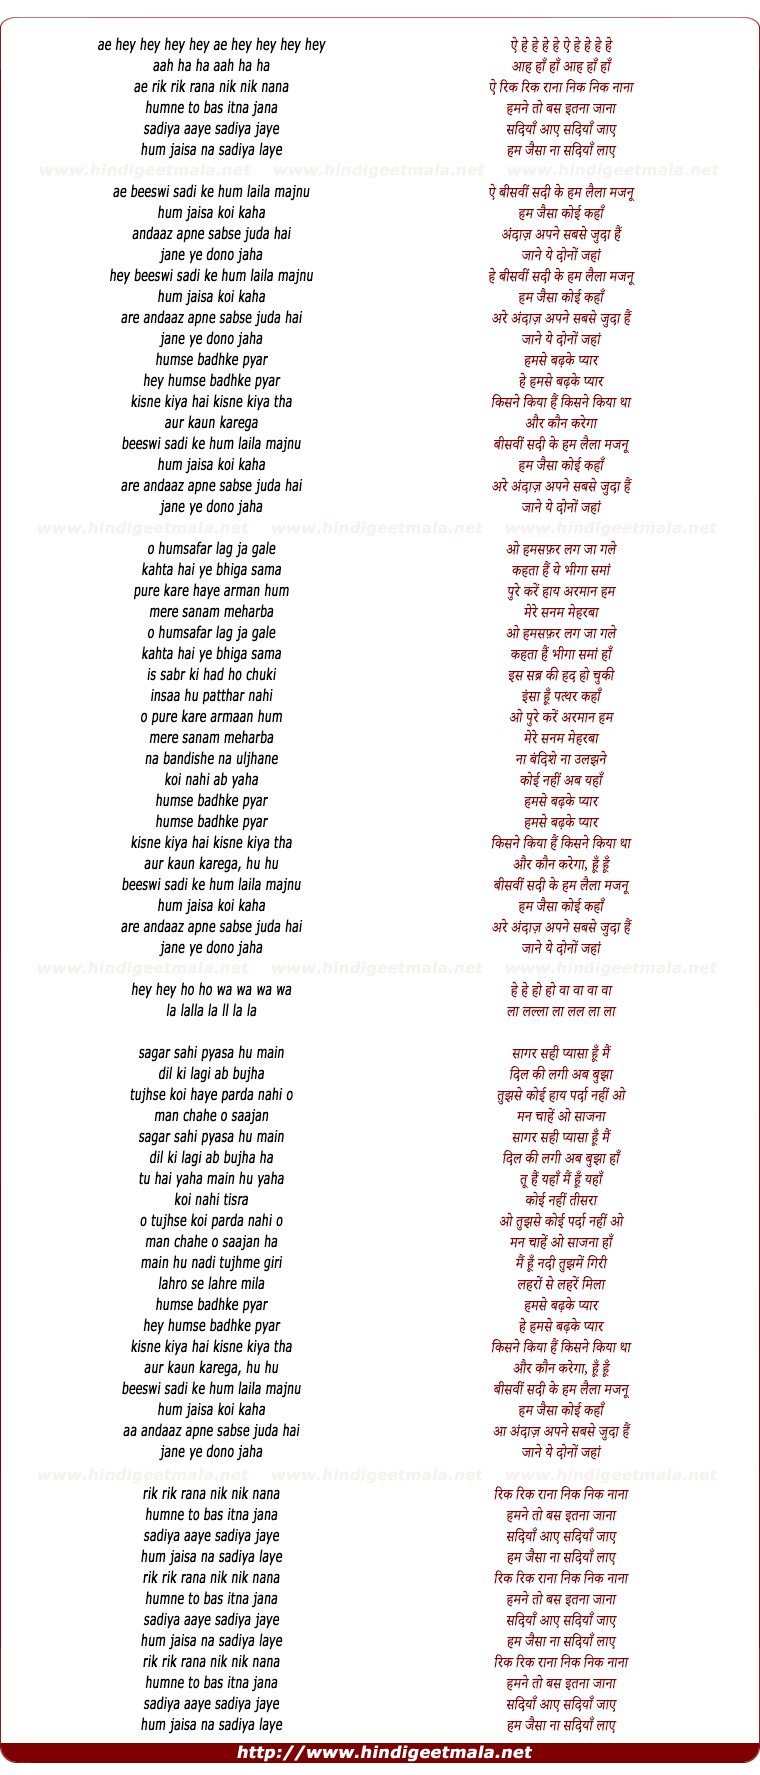 lyrics of song Beeswin Sadi Ke